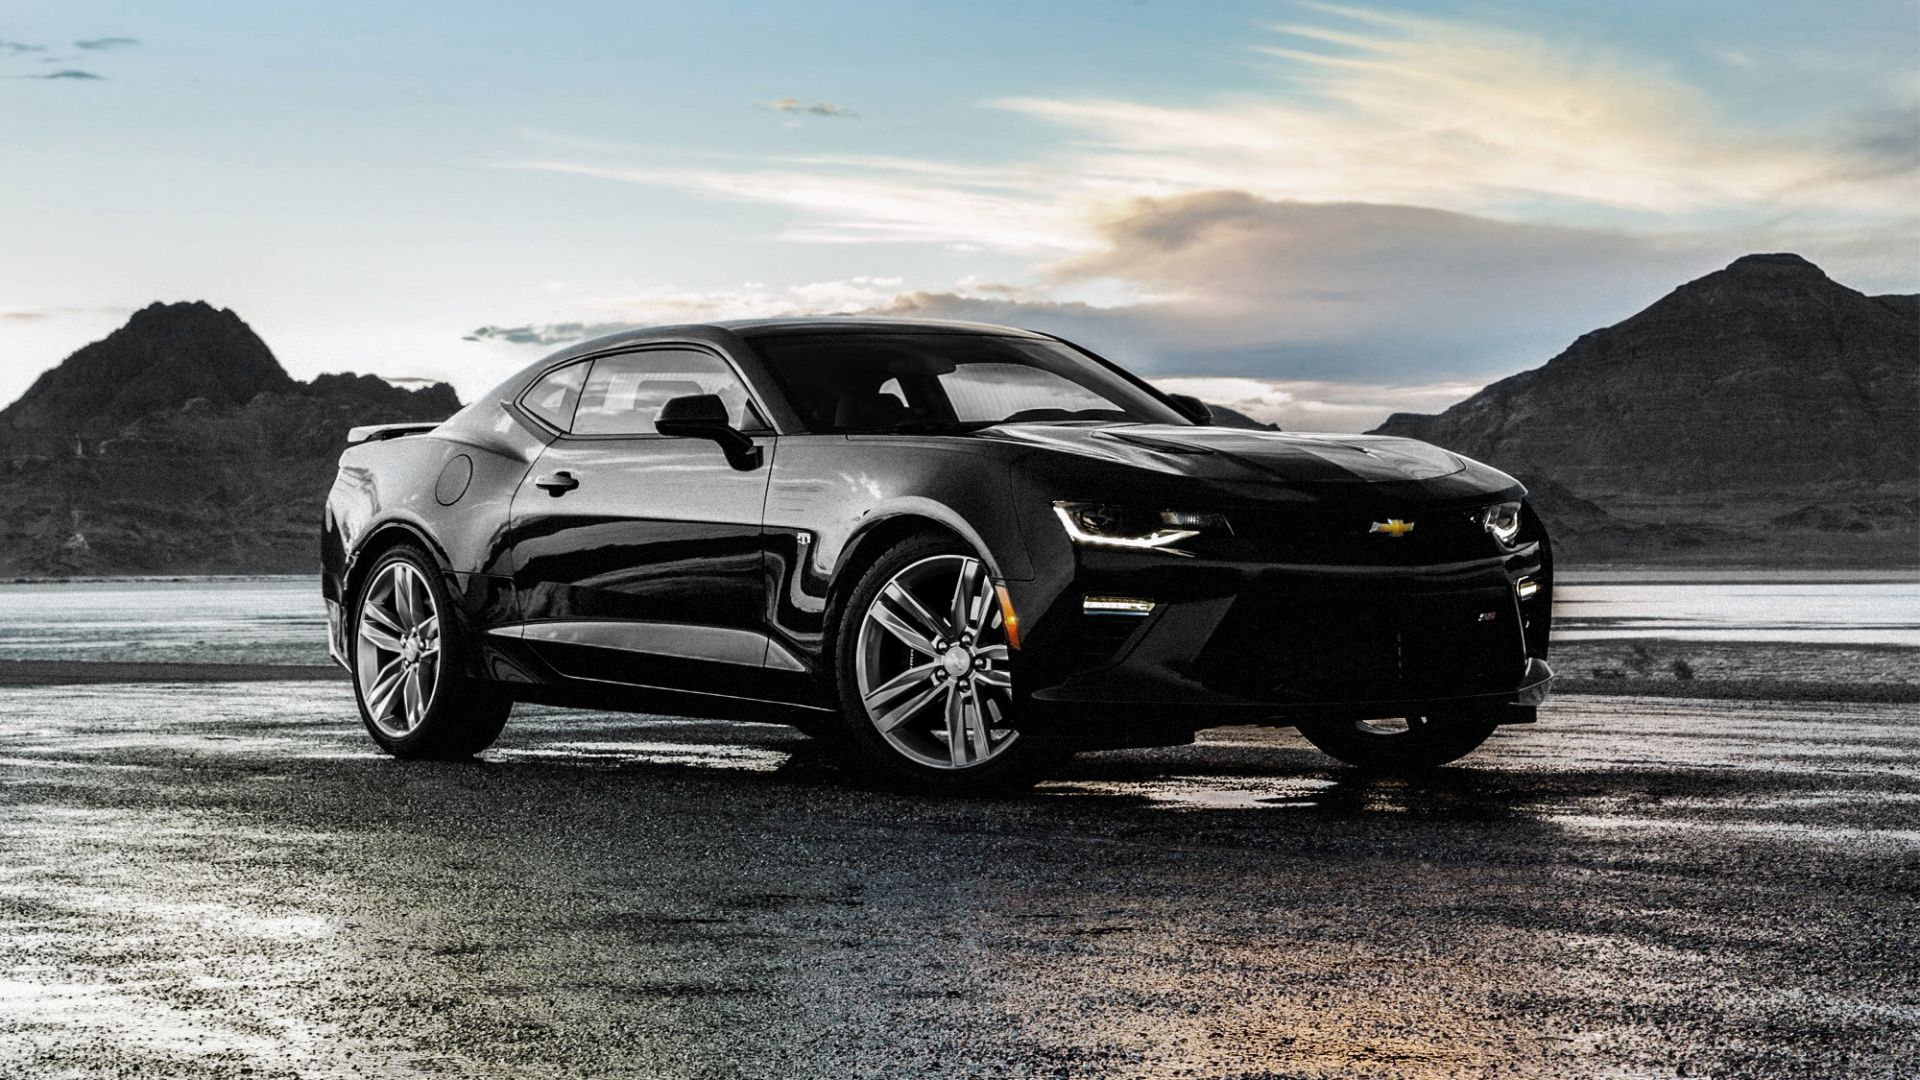 Chevrolet Camaro Ss Muscle Car Wallpapers And Backgrounds